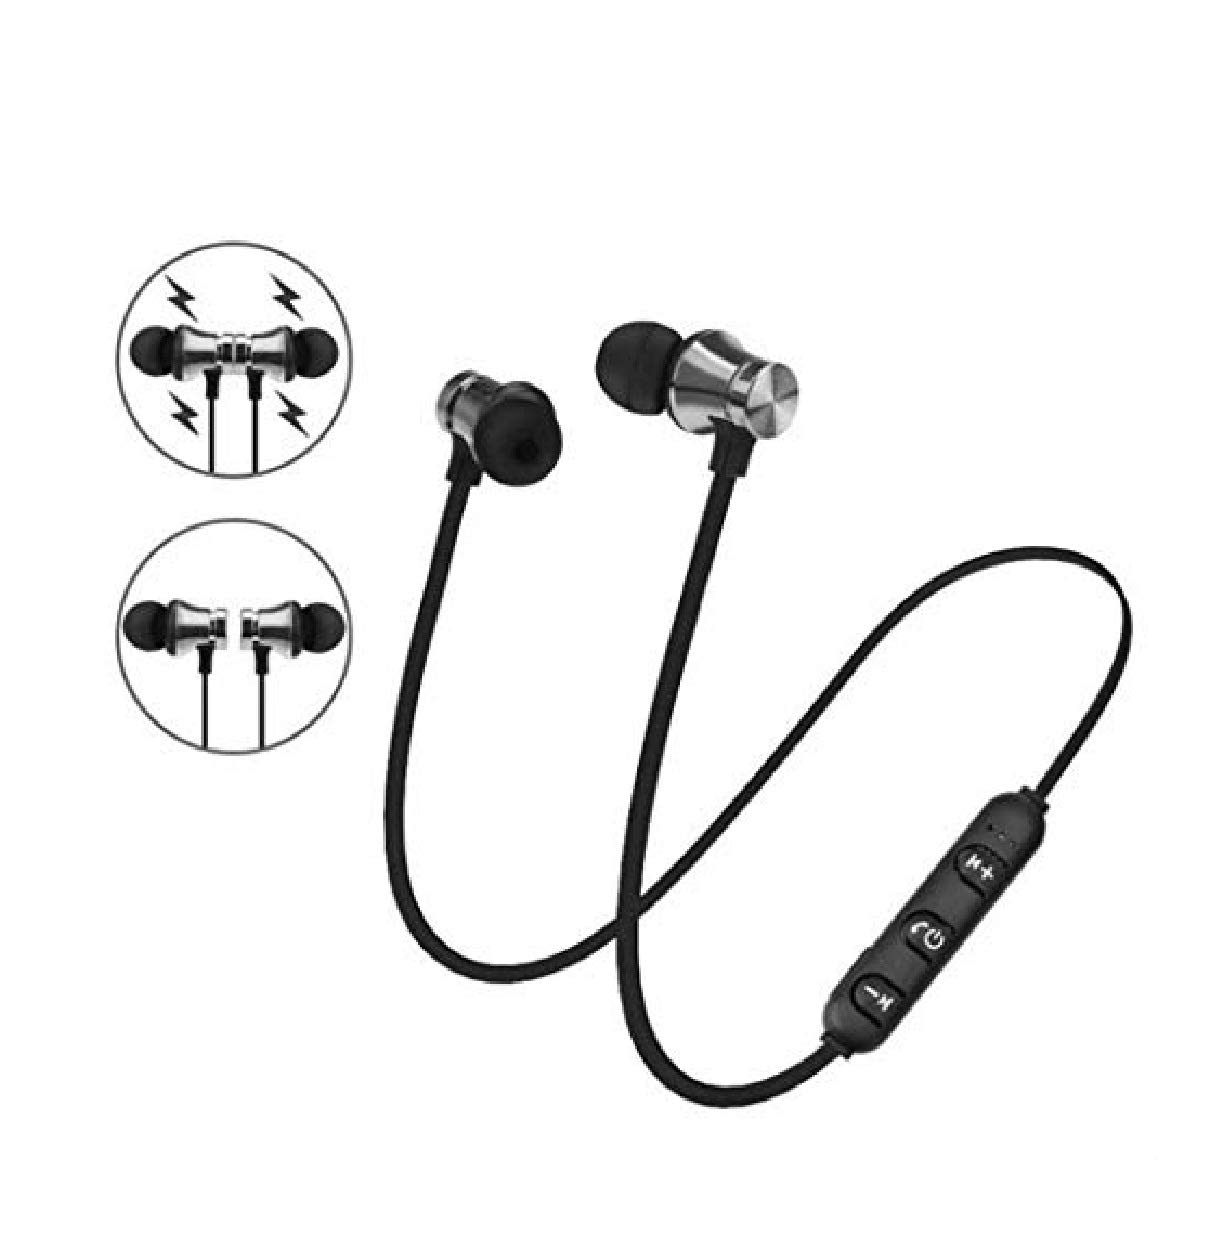 Lanbter Bluetooth Headphones,Qualteus Magnetic Wireless Earbuds, 4.1,8H HiFi Stereo in-Ear Sweatproof IPX6 Sport Headsets for Gym Workout Earphon Corded Headsets